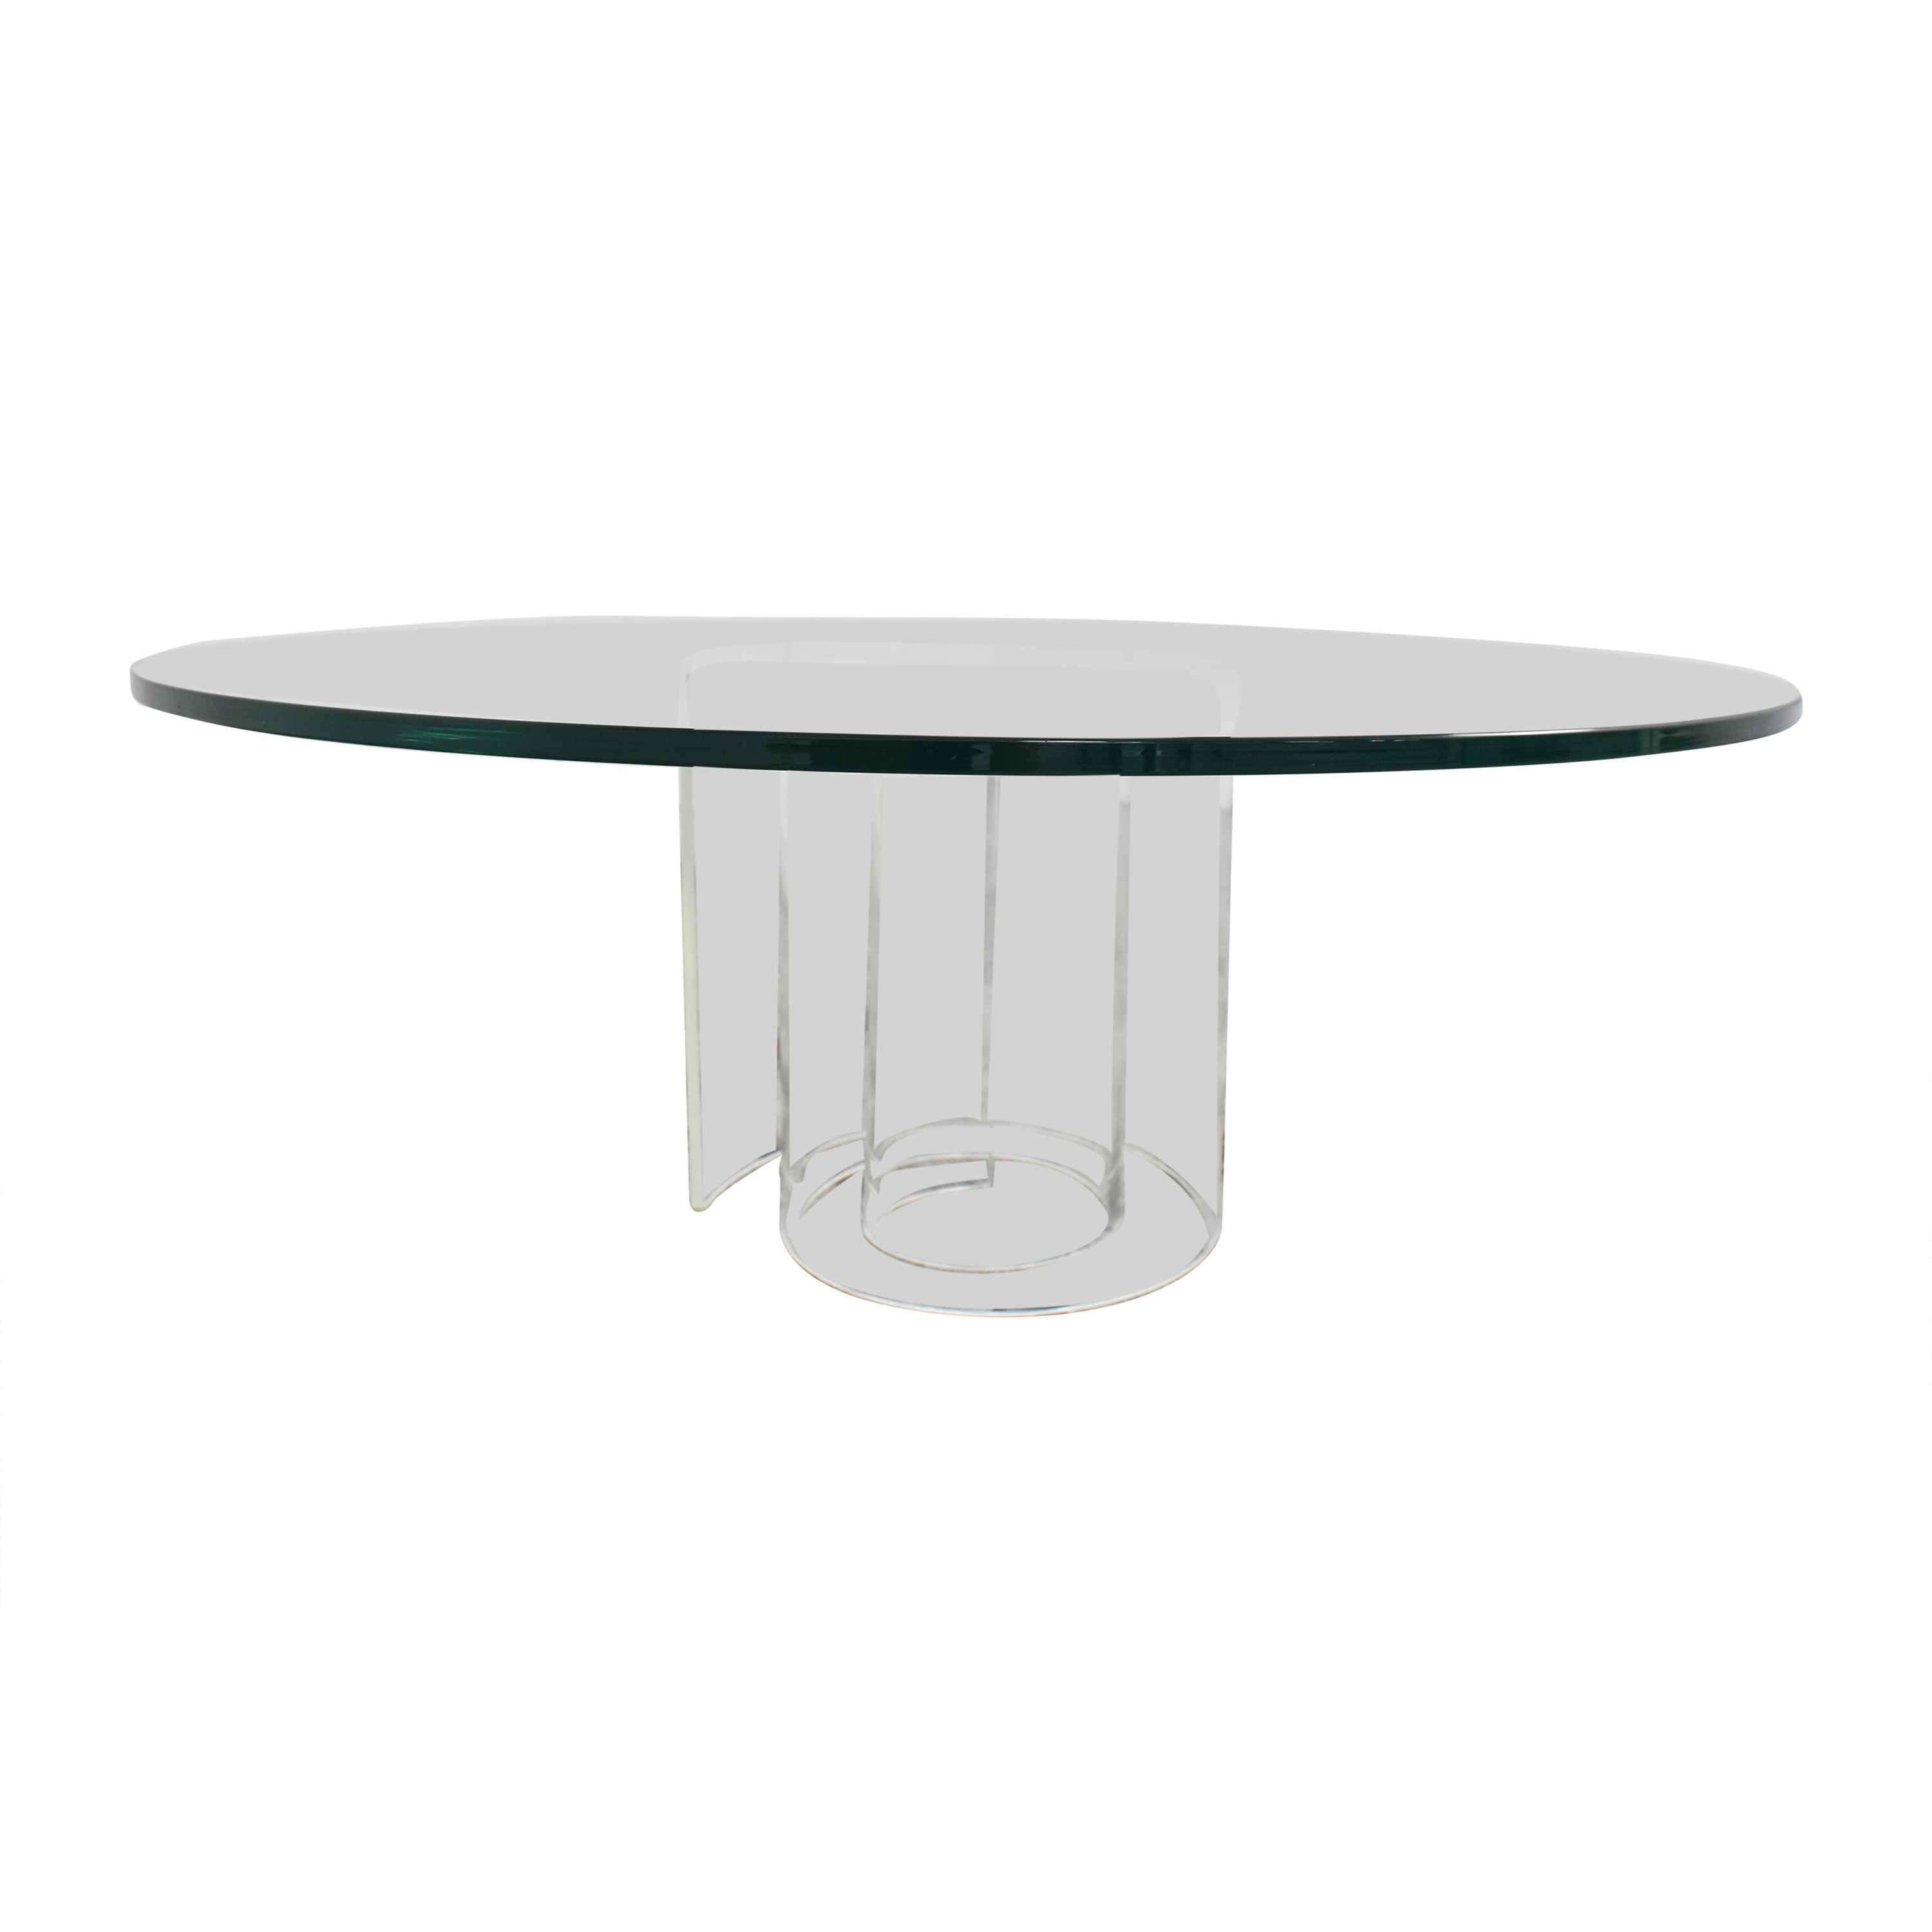 Crate & Barrel Crate & Barrel Glass Coffee Table used